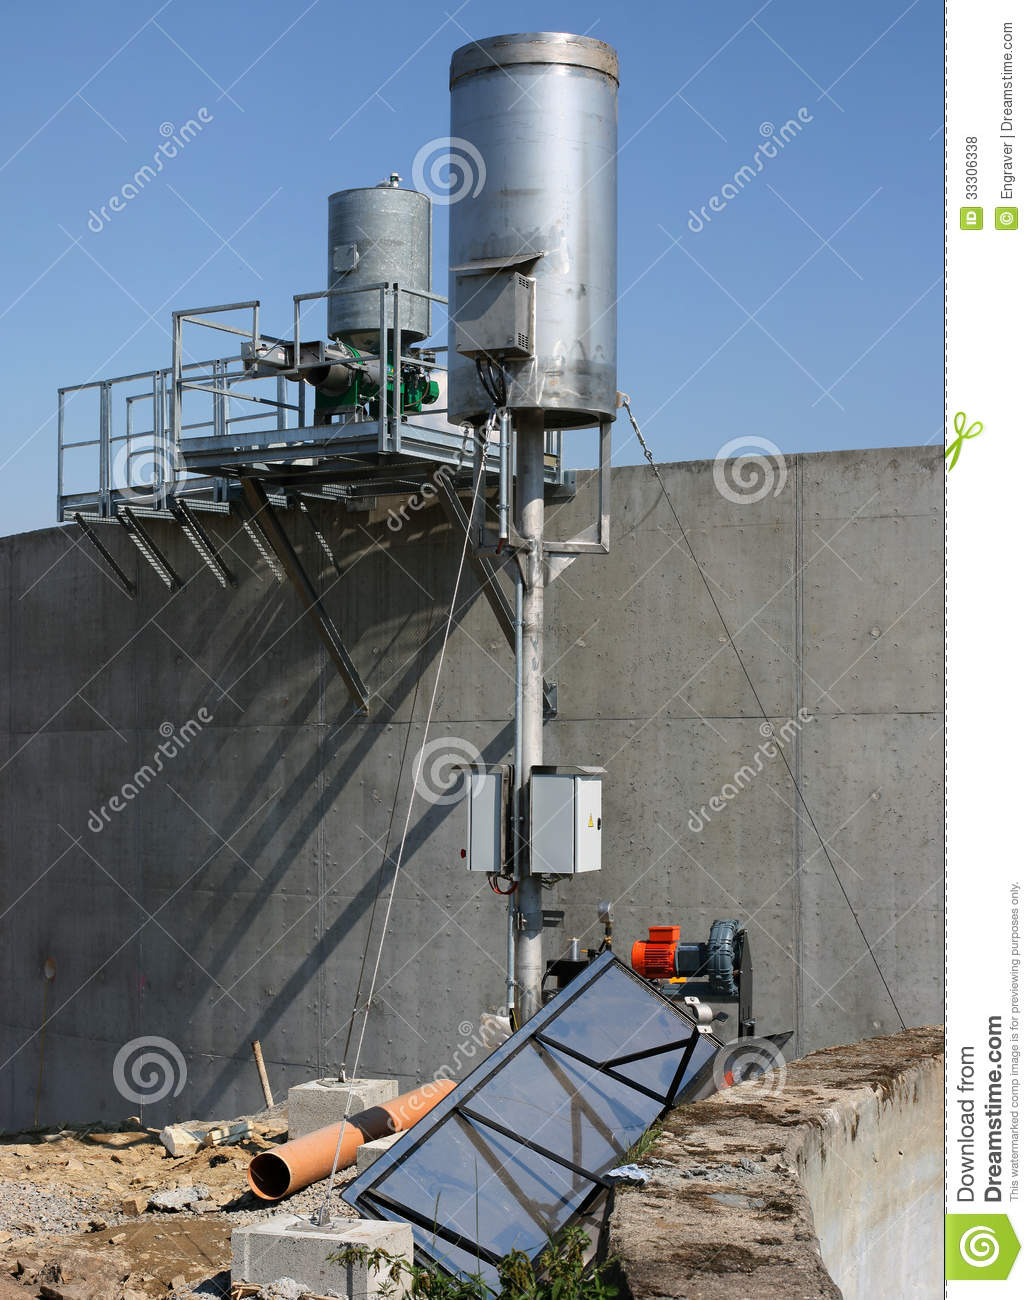 Building of bio gas plant 8 royalty free stock photos for Construction bio